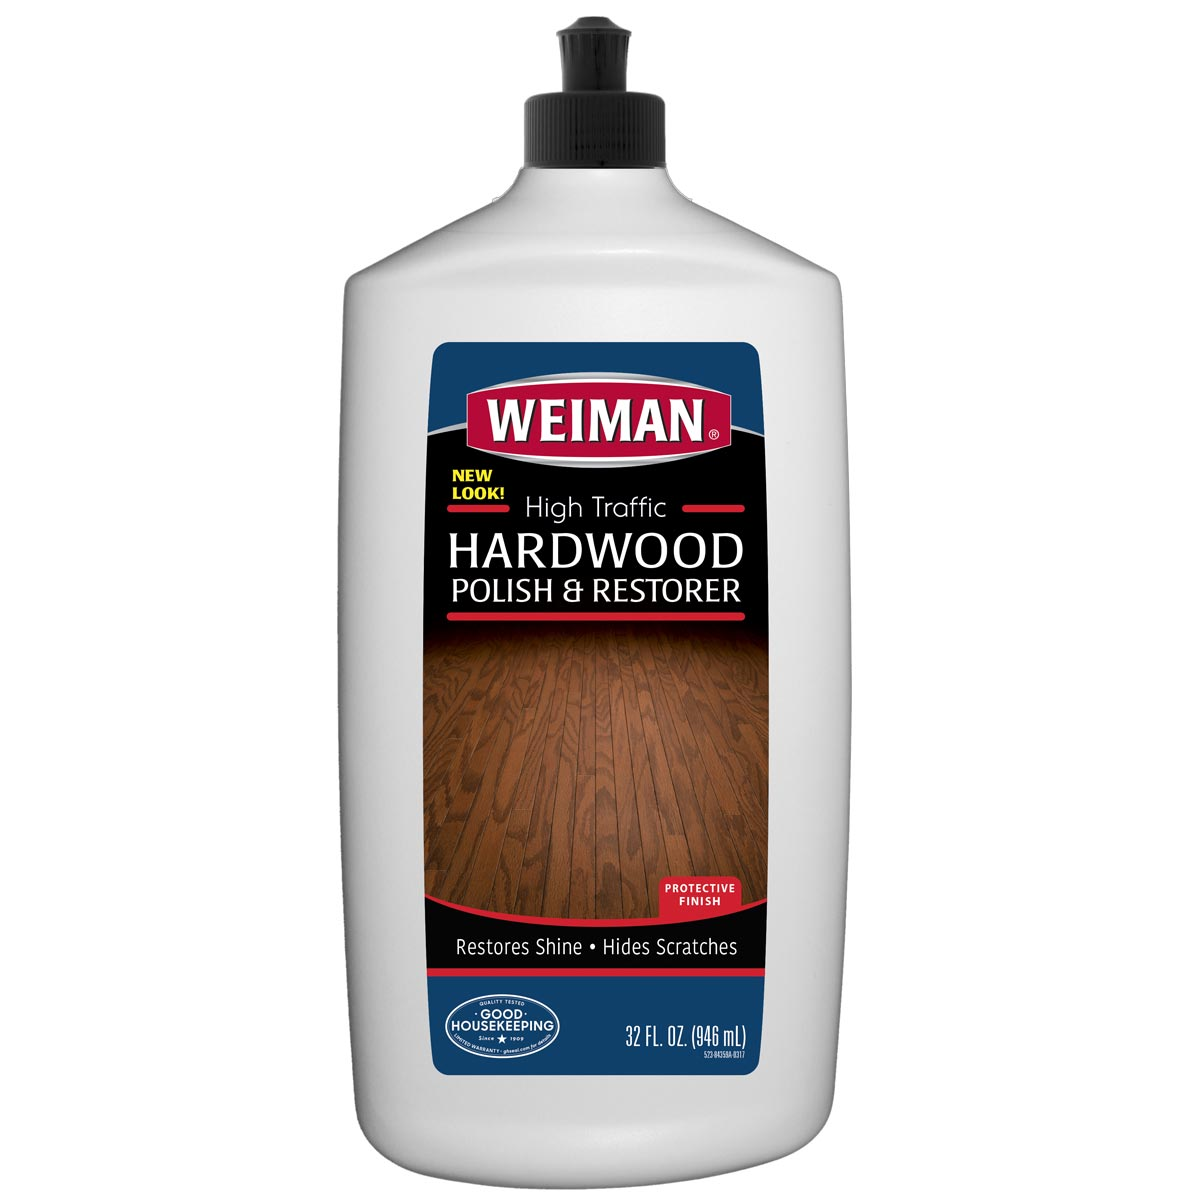 https://googone.com/media/catalog/product/h/a/hardwood-floor-polish-_-restorer_front_1.jpg